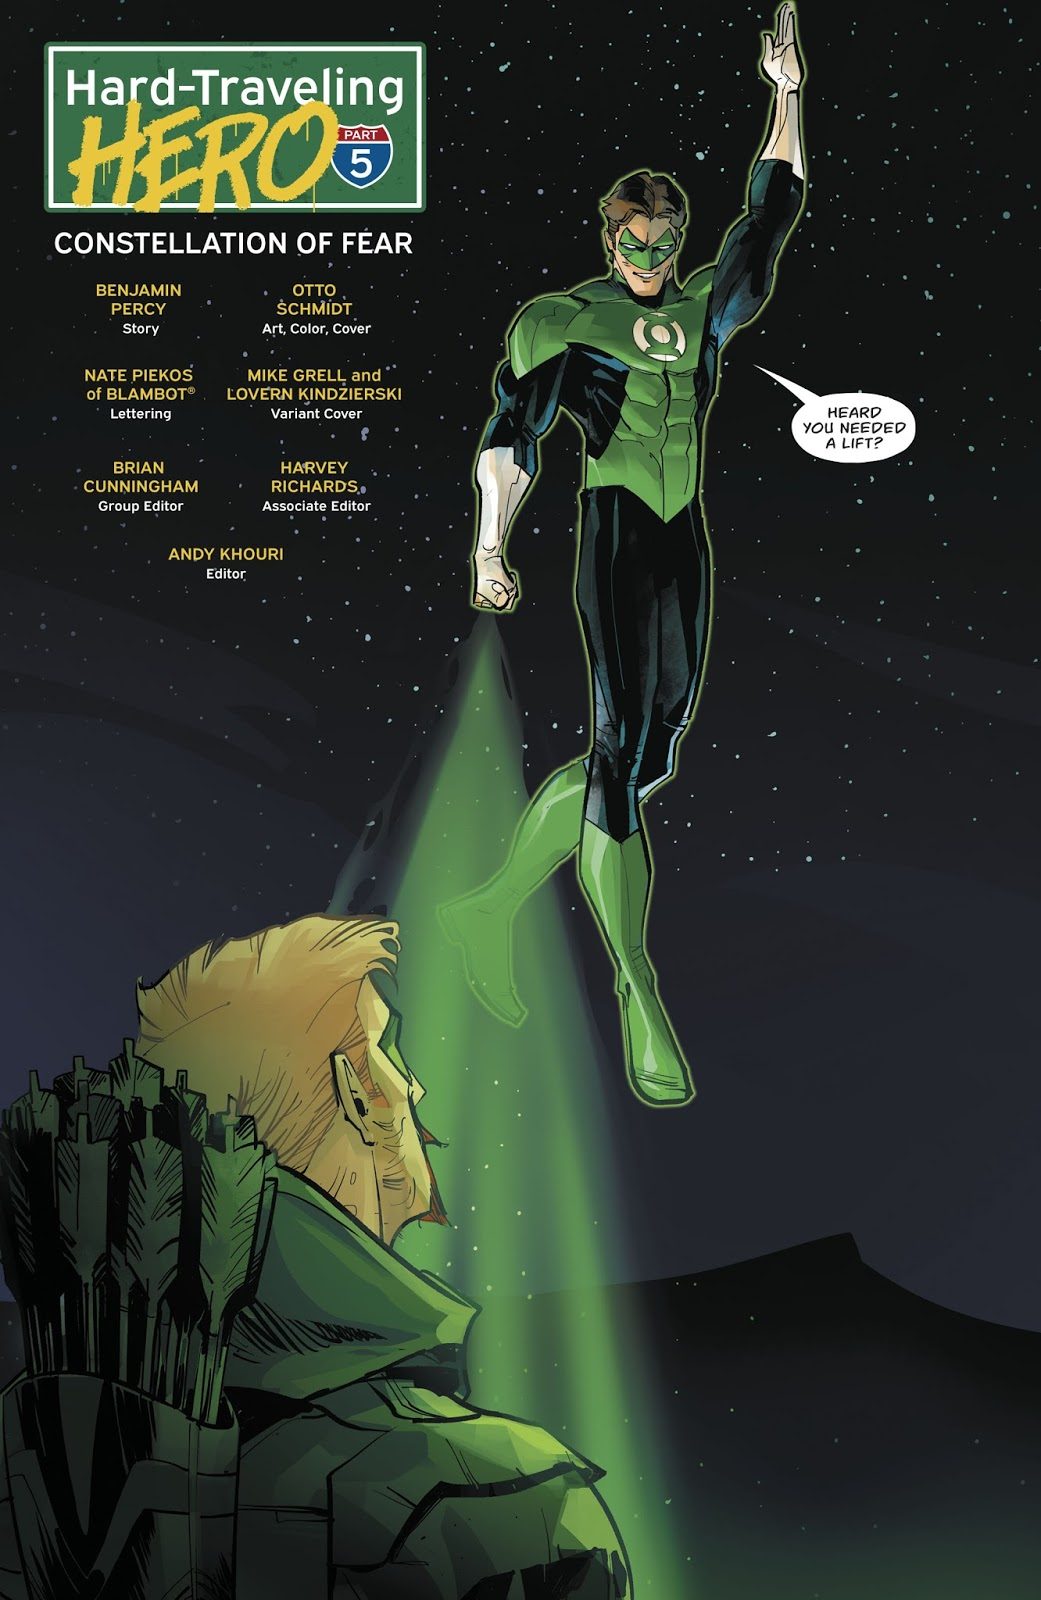 Green Lantern (Green Arrow Vol. 6 #30)